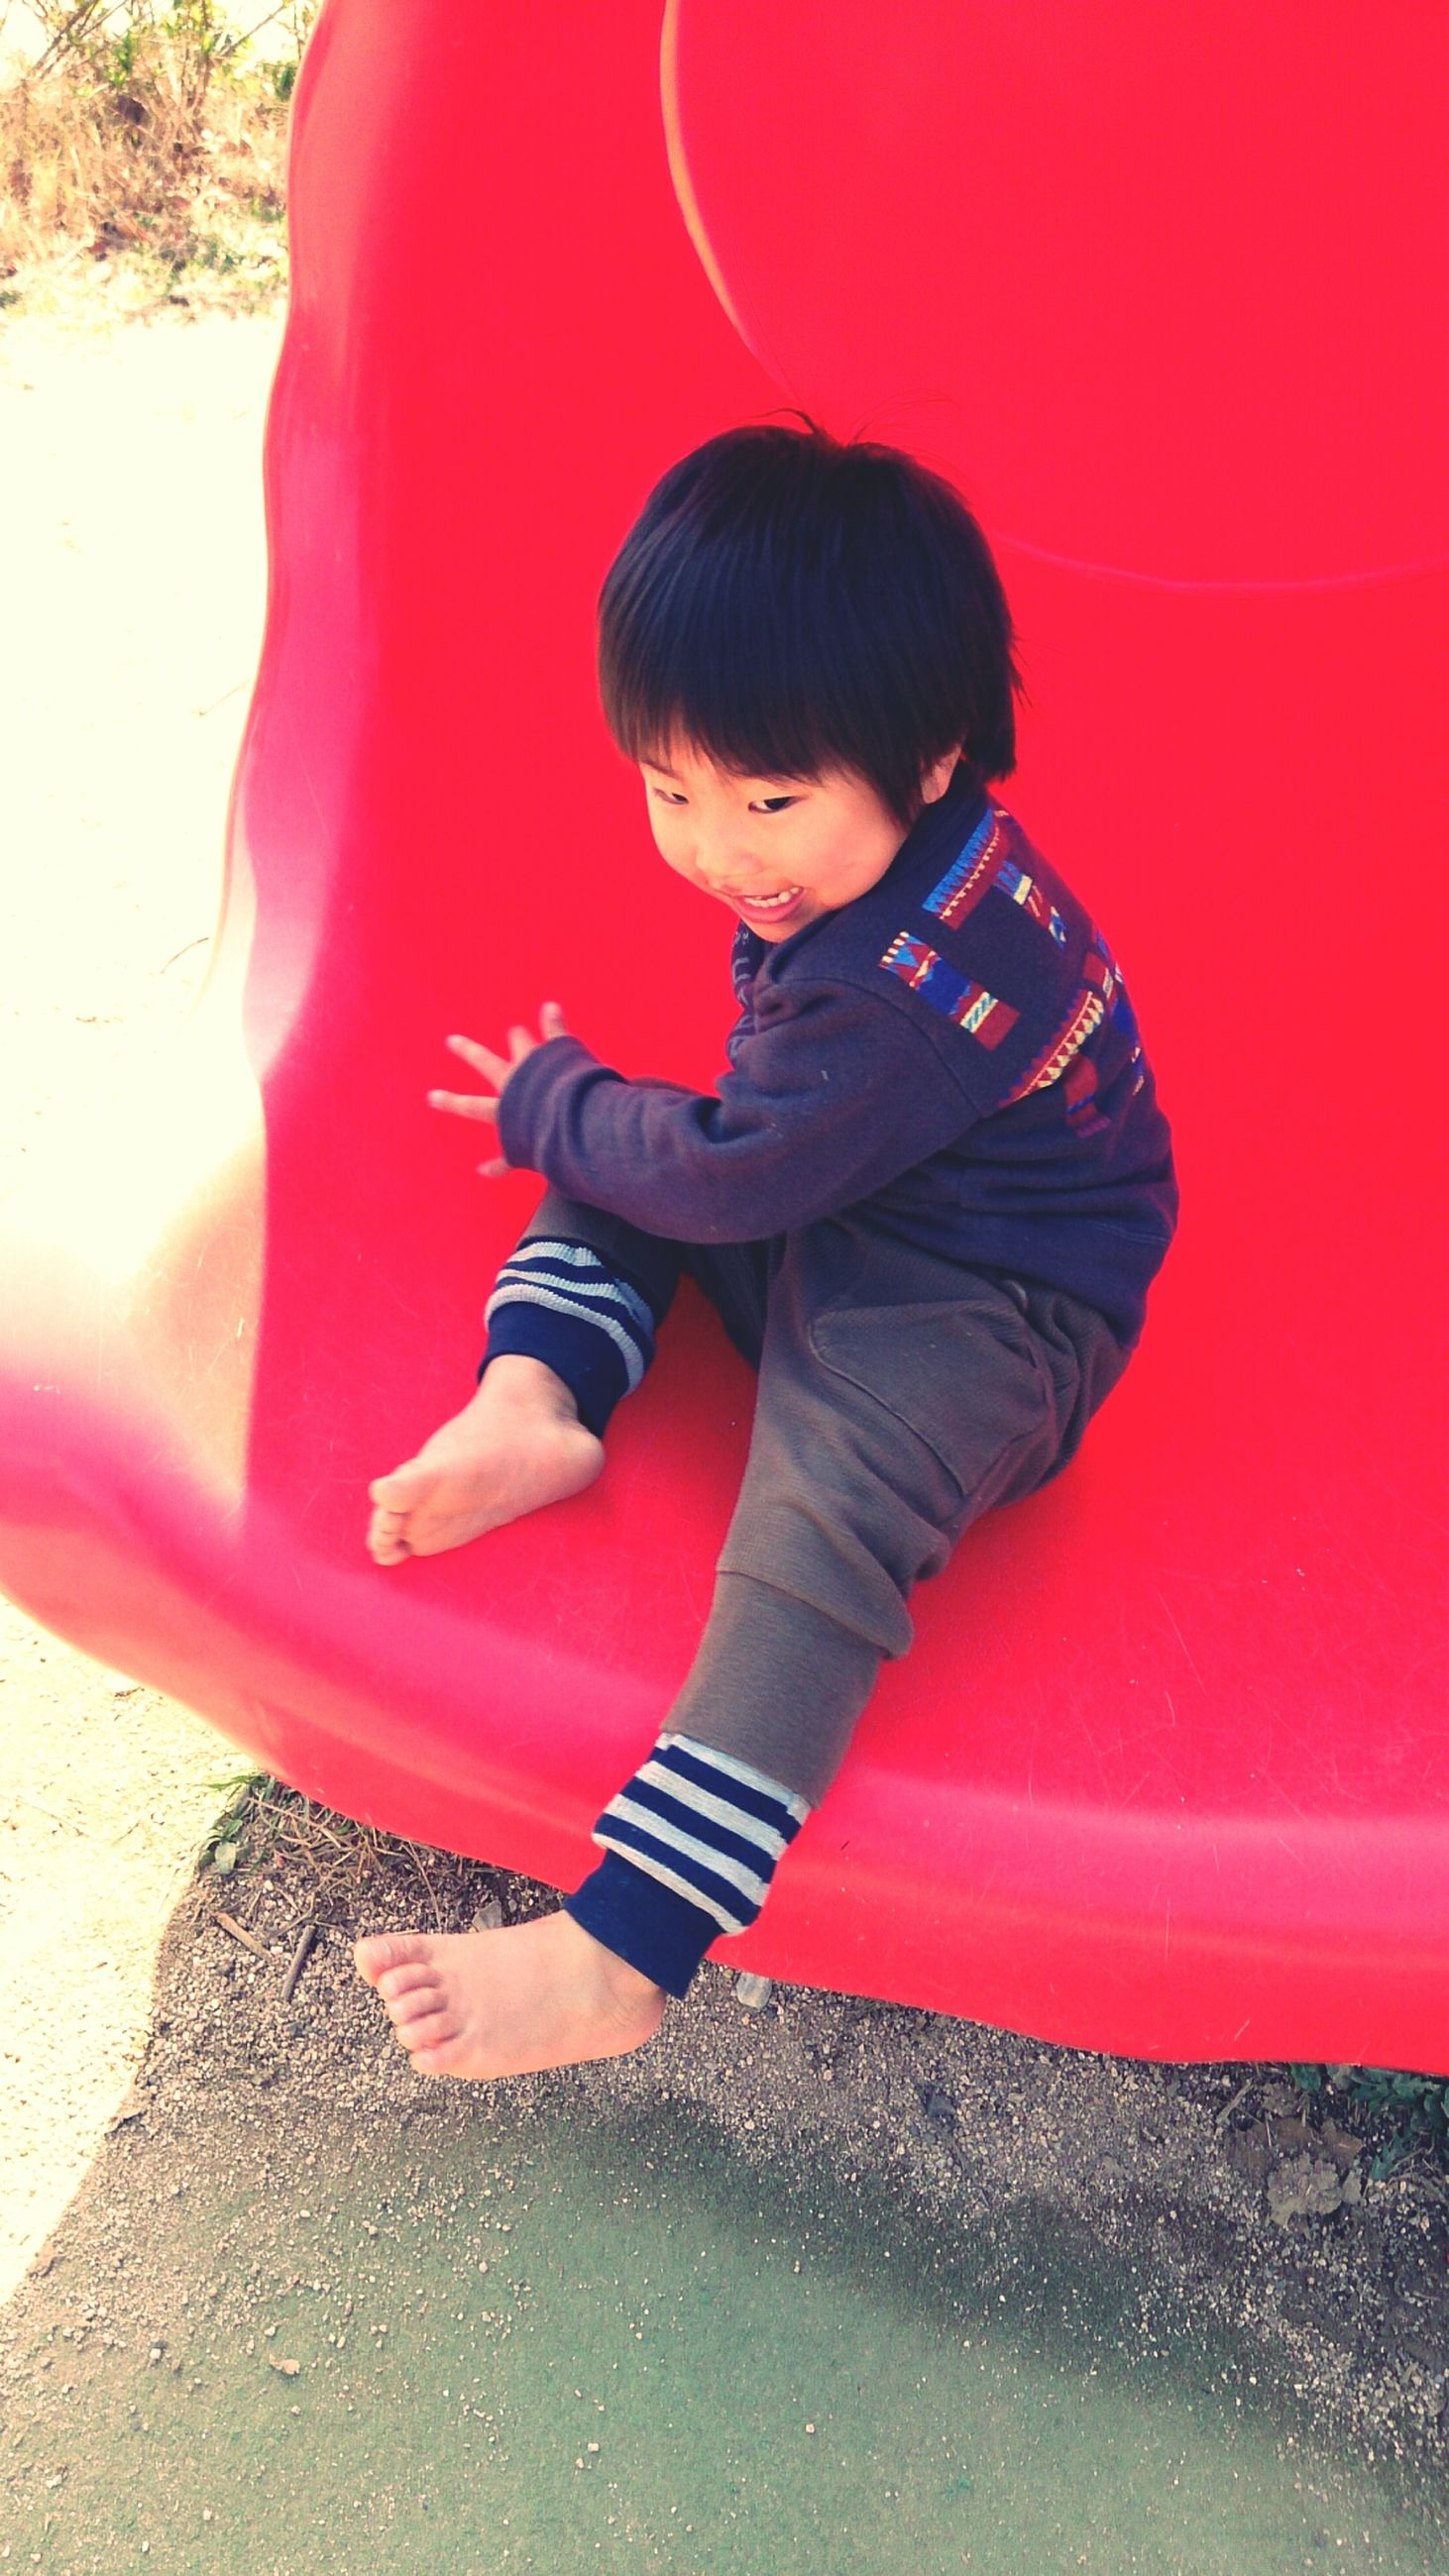 childhood, lifestyles, full length, leisure activity, elementary age, person, casual clothing, girls, boys, high angle view, innocence, red, playing, standing, fun, enjoyment, holding, cute